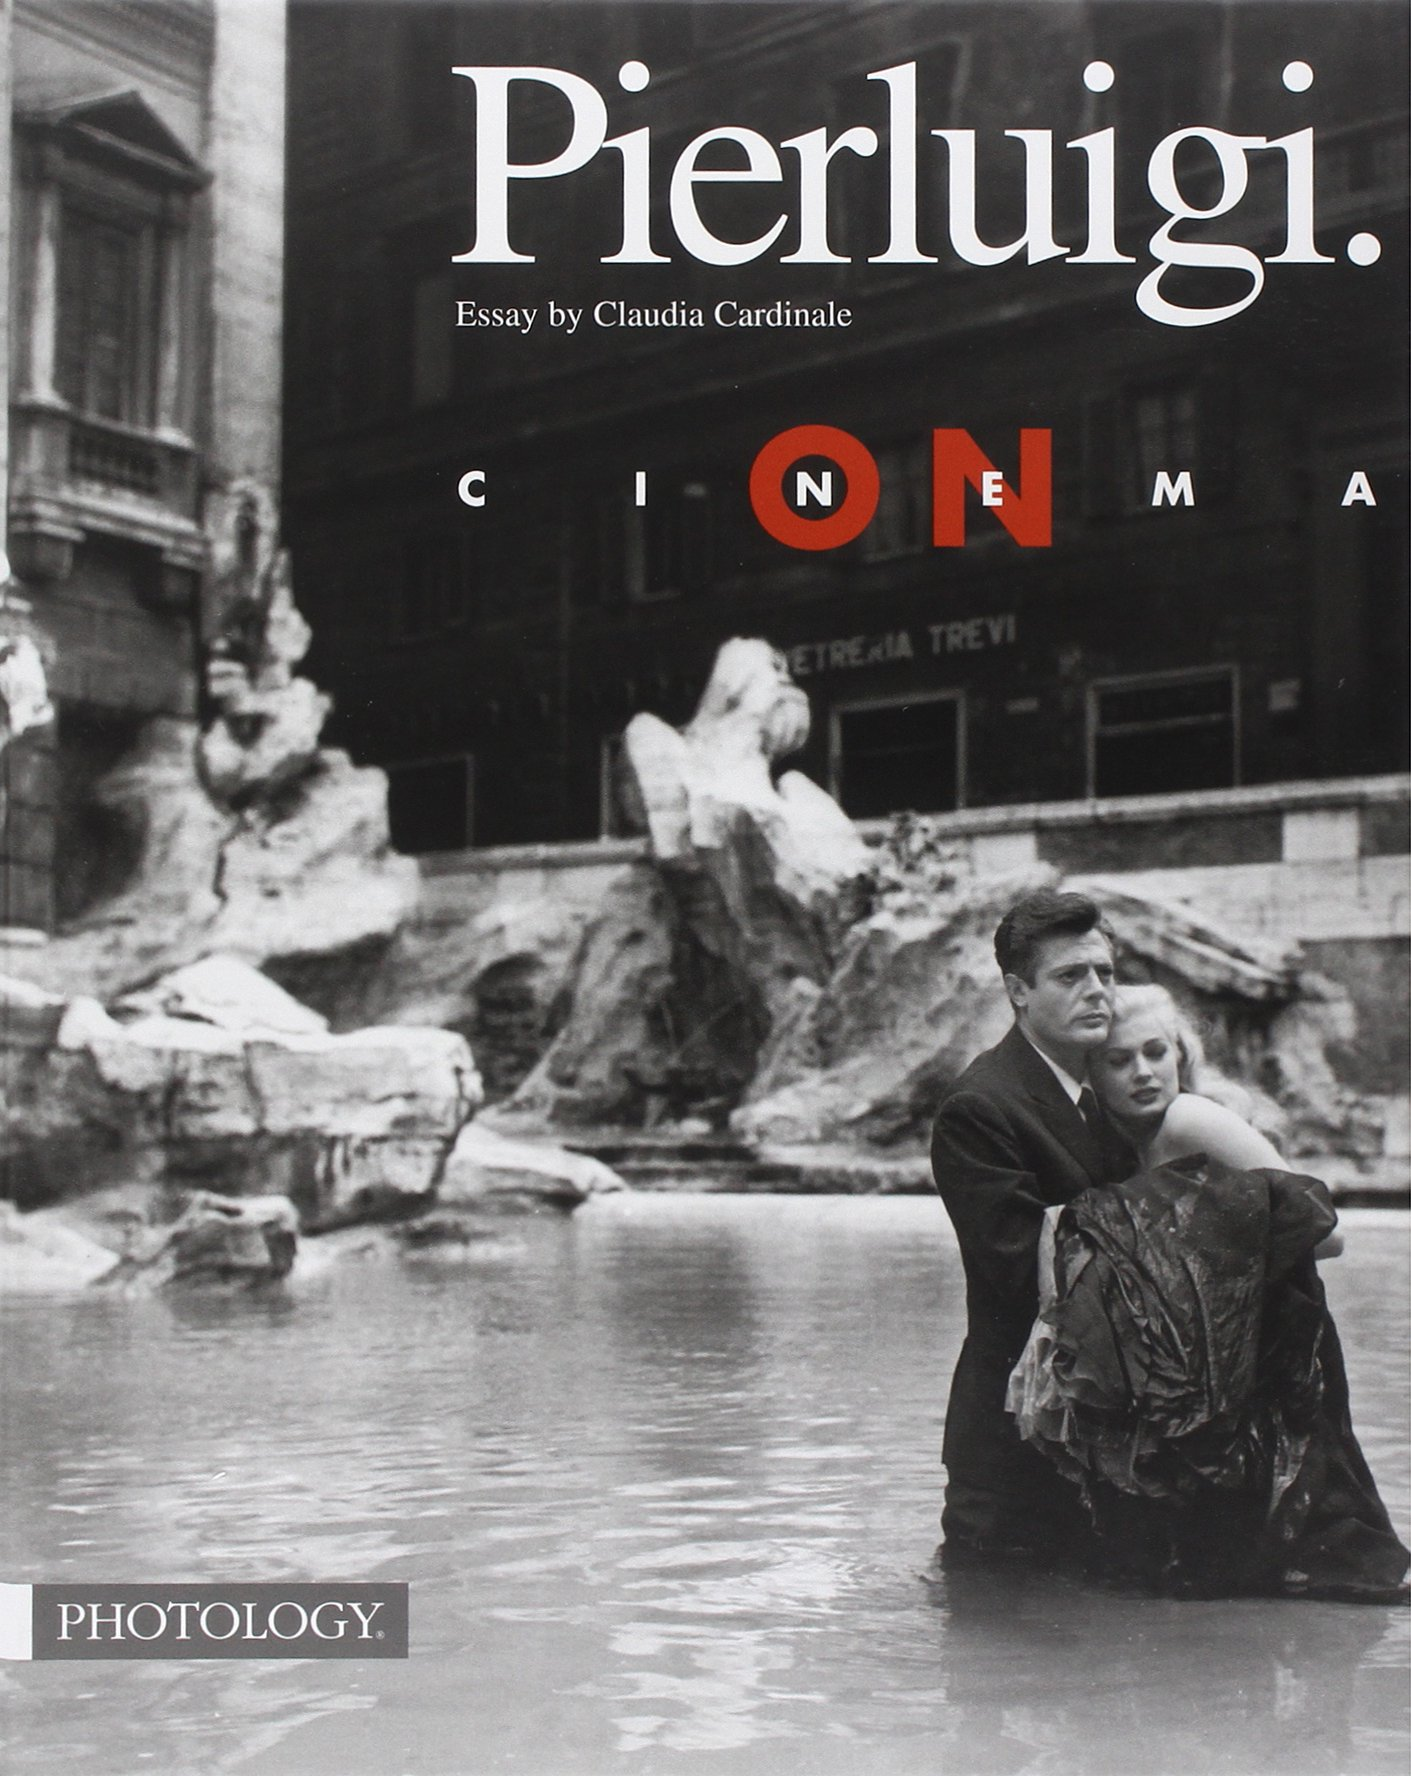 Available to buy  here  this book showcasing Pierluigi Praturlon's photography is one for the 'wish list'.